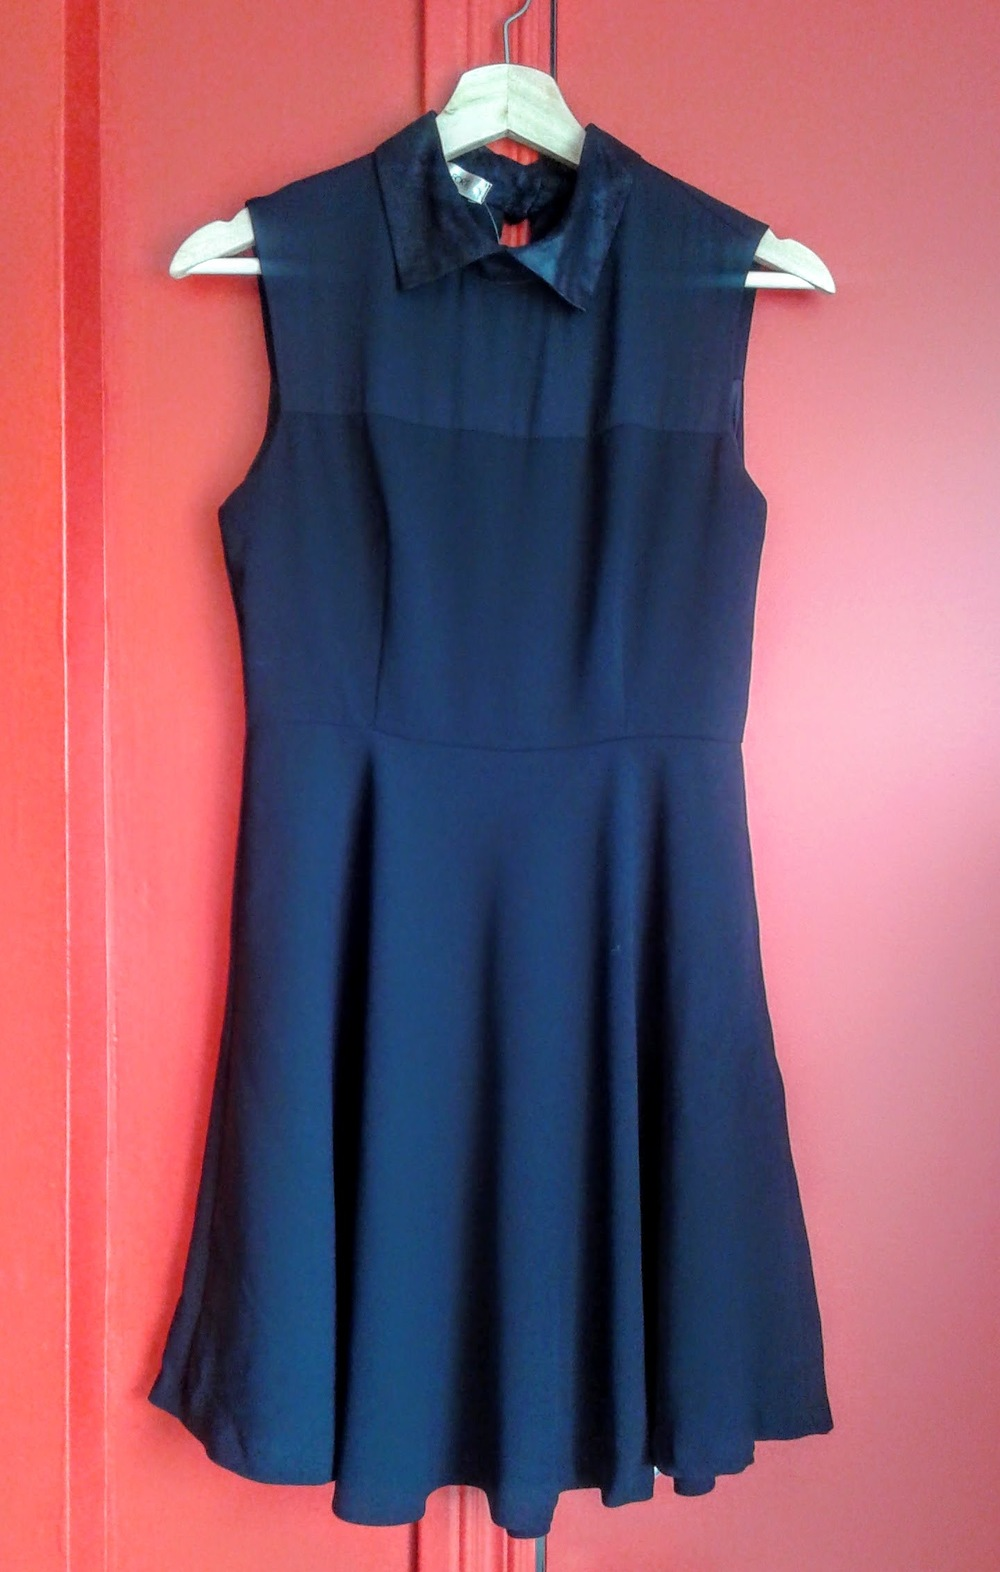 Oak + Fort dress; size S; $42